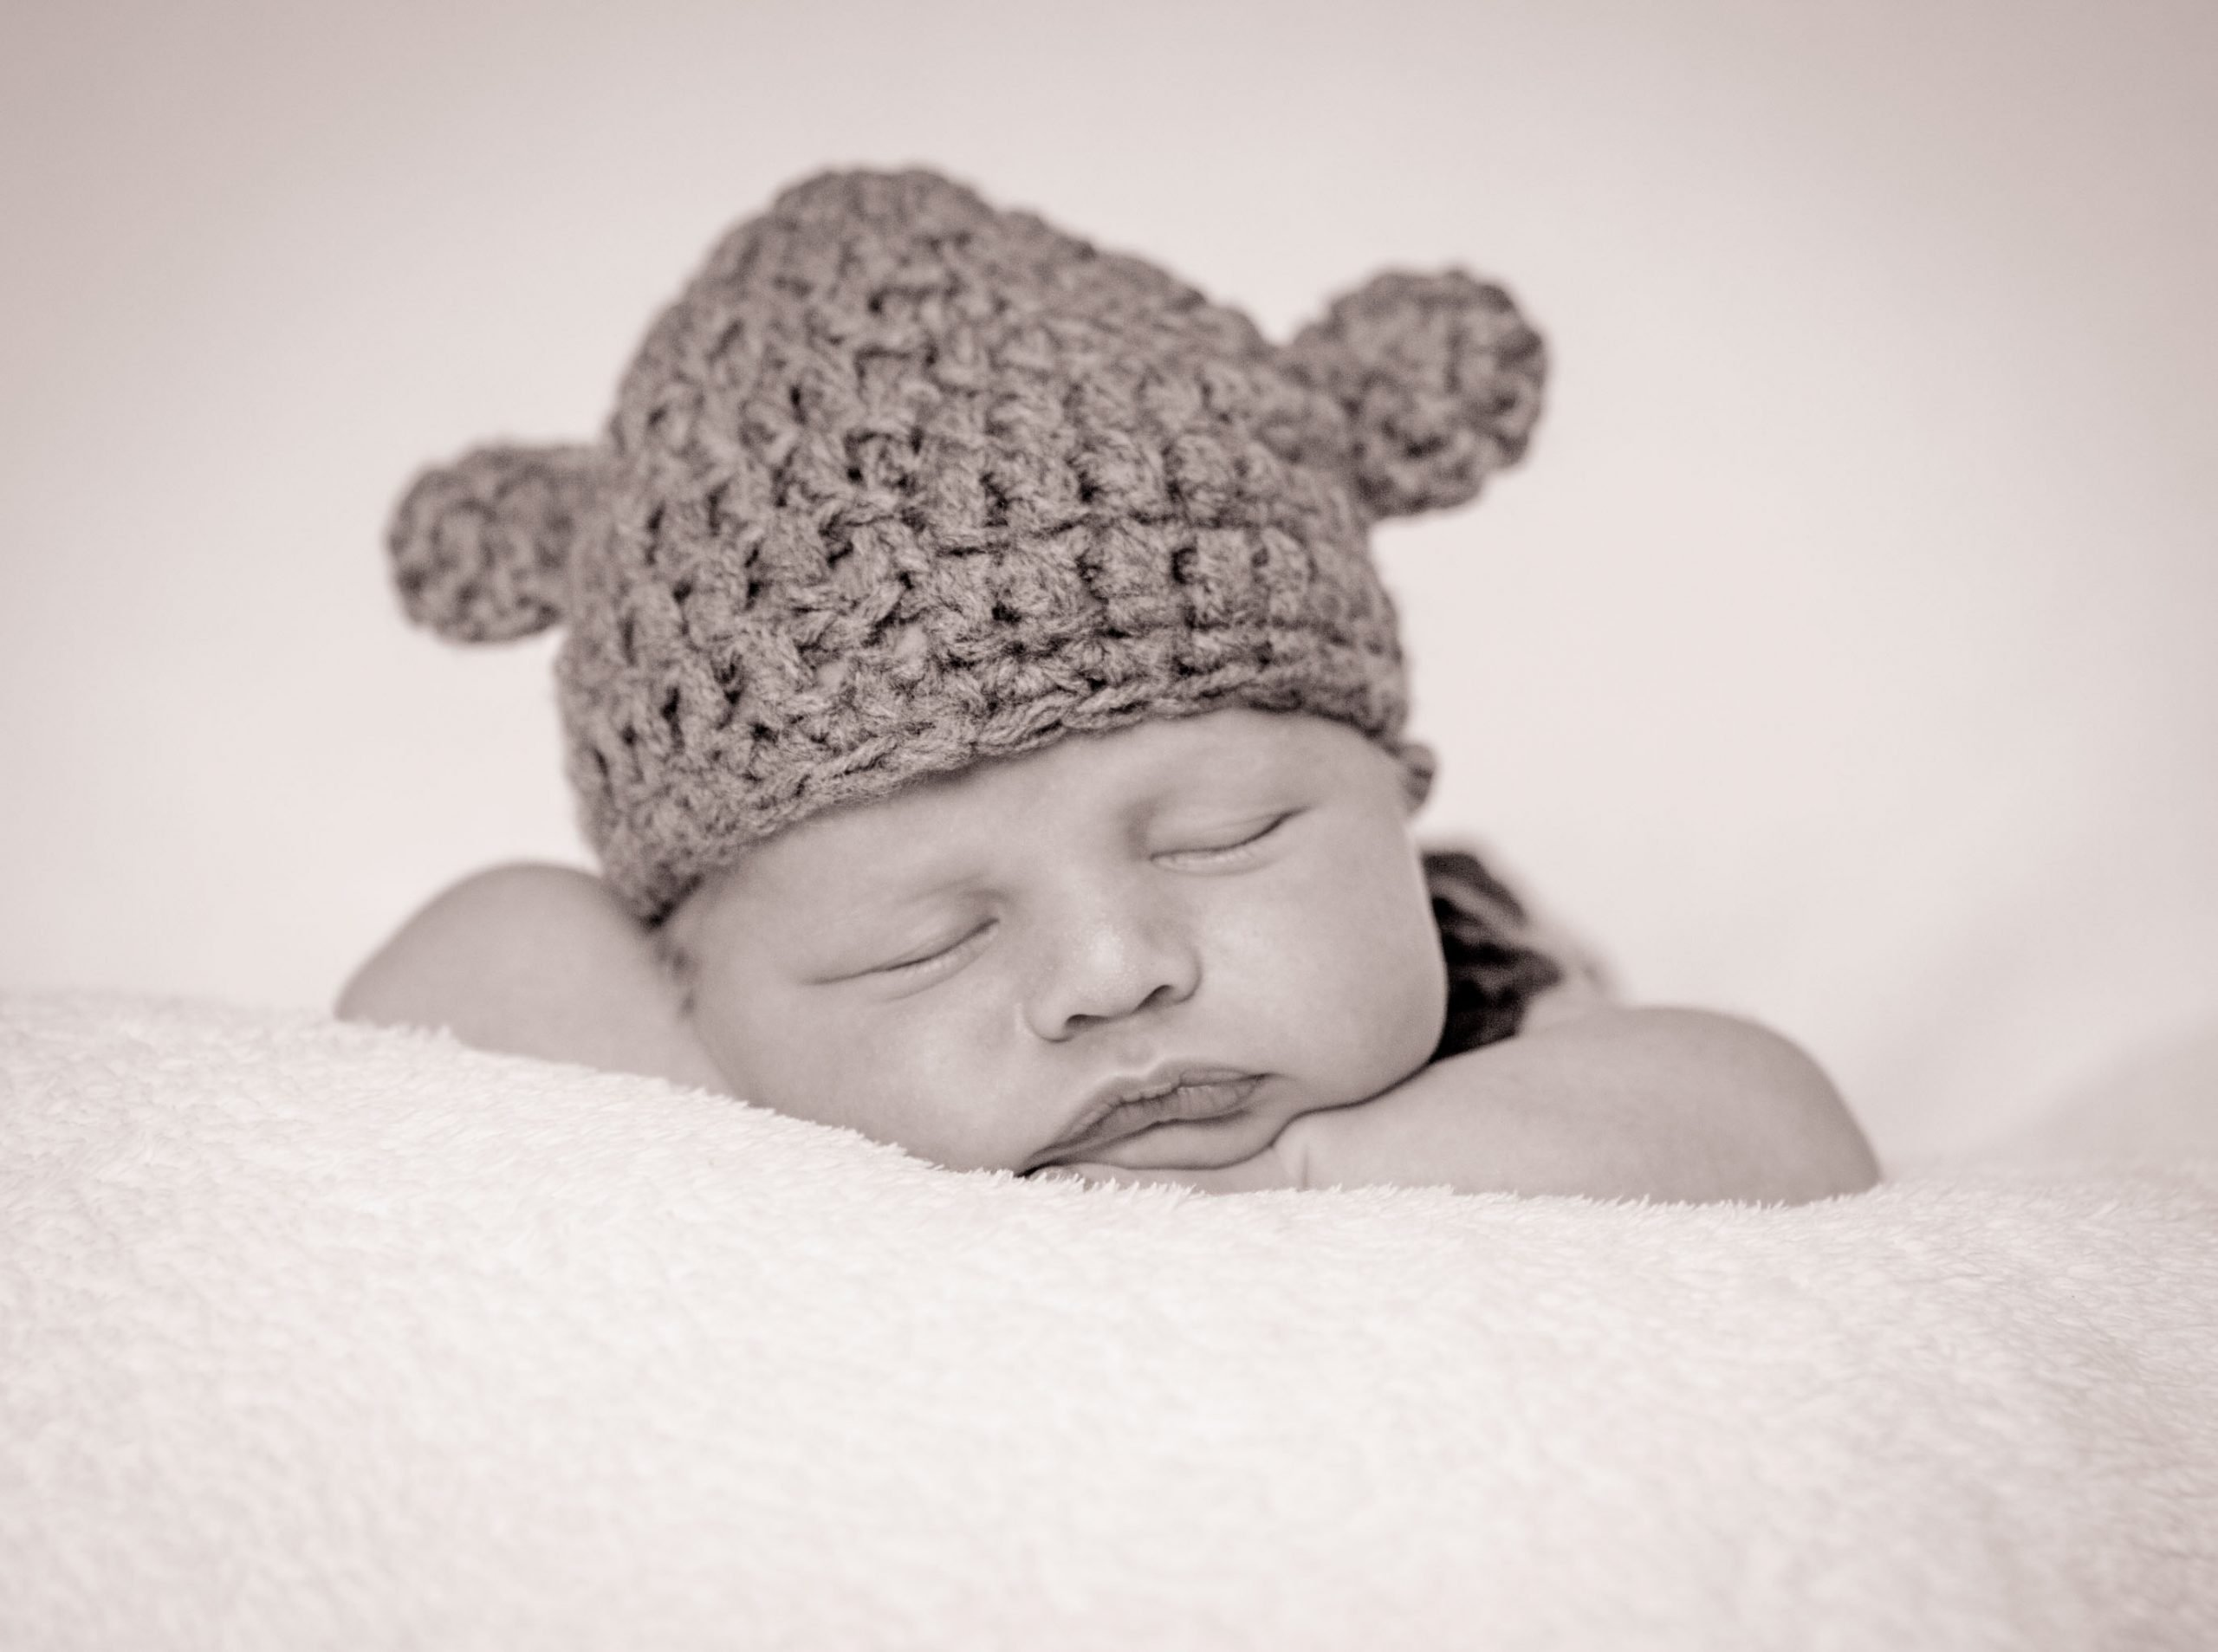 Newborn Session with Baby Max, 8 days old, Tania Miller Photography, Newport Newborn Photographer